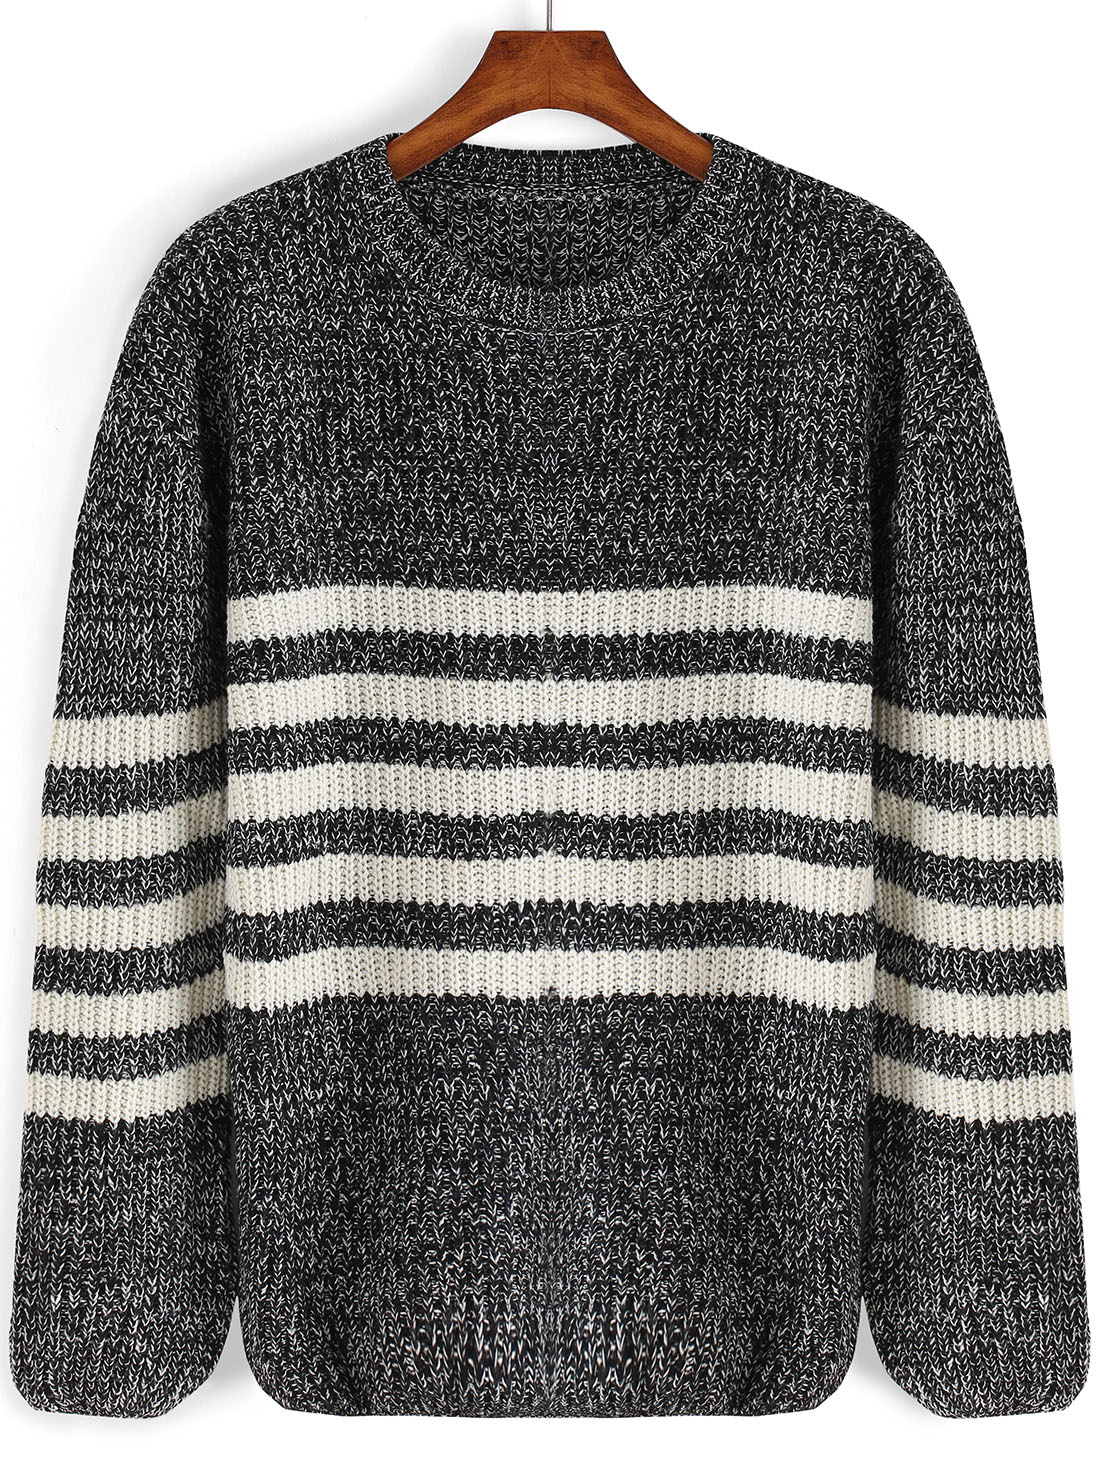 Black on white or brights on neutrals—we've got you covered with amazing women's sweaters featuring subtle to bold stripes. Cultivate a cool, casual wardrobe with breezy knits like lightweight linen pieces for warmer weather, and check out chunkier knits for the colder season.